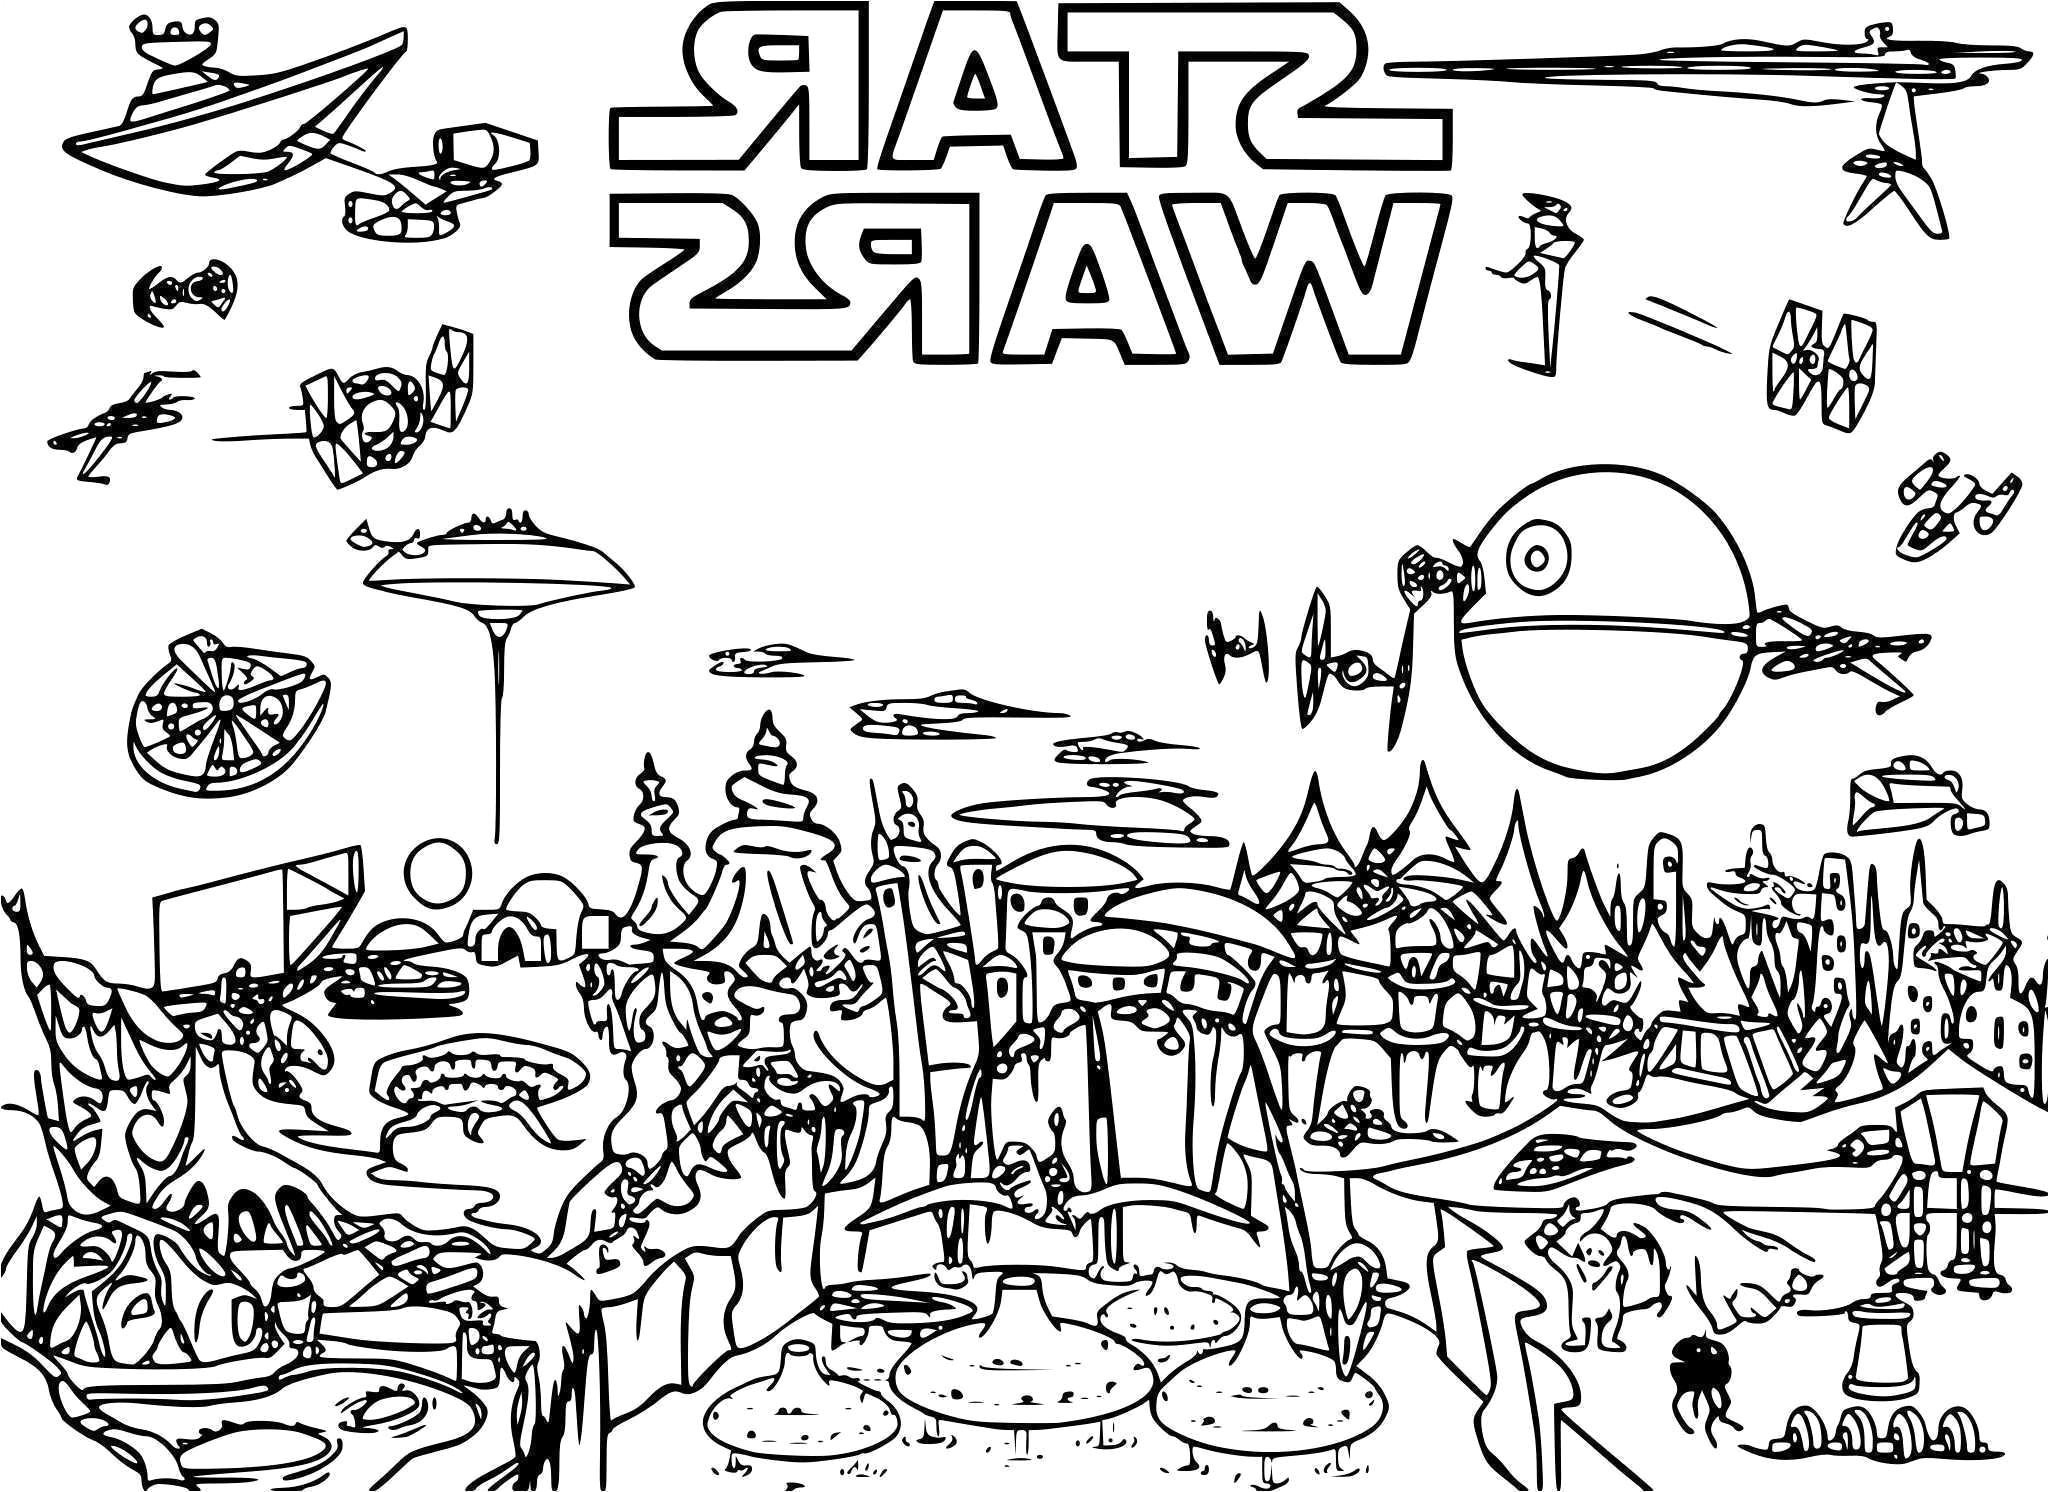 Charmant Star Wars Dessin à Imprimer 25 sur Coloriage Inspiration for Star Wars Dessin à Imprimer